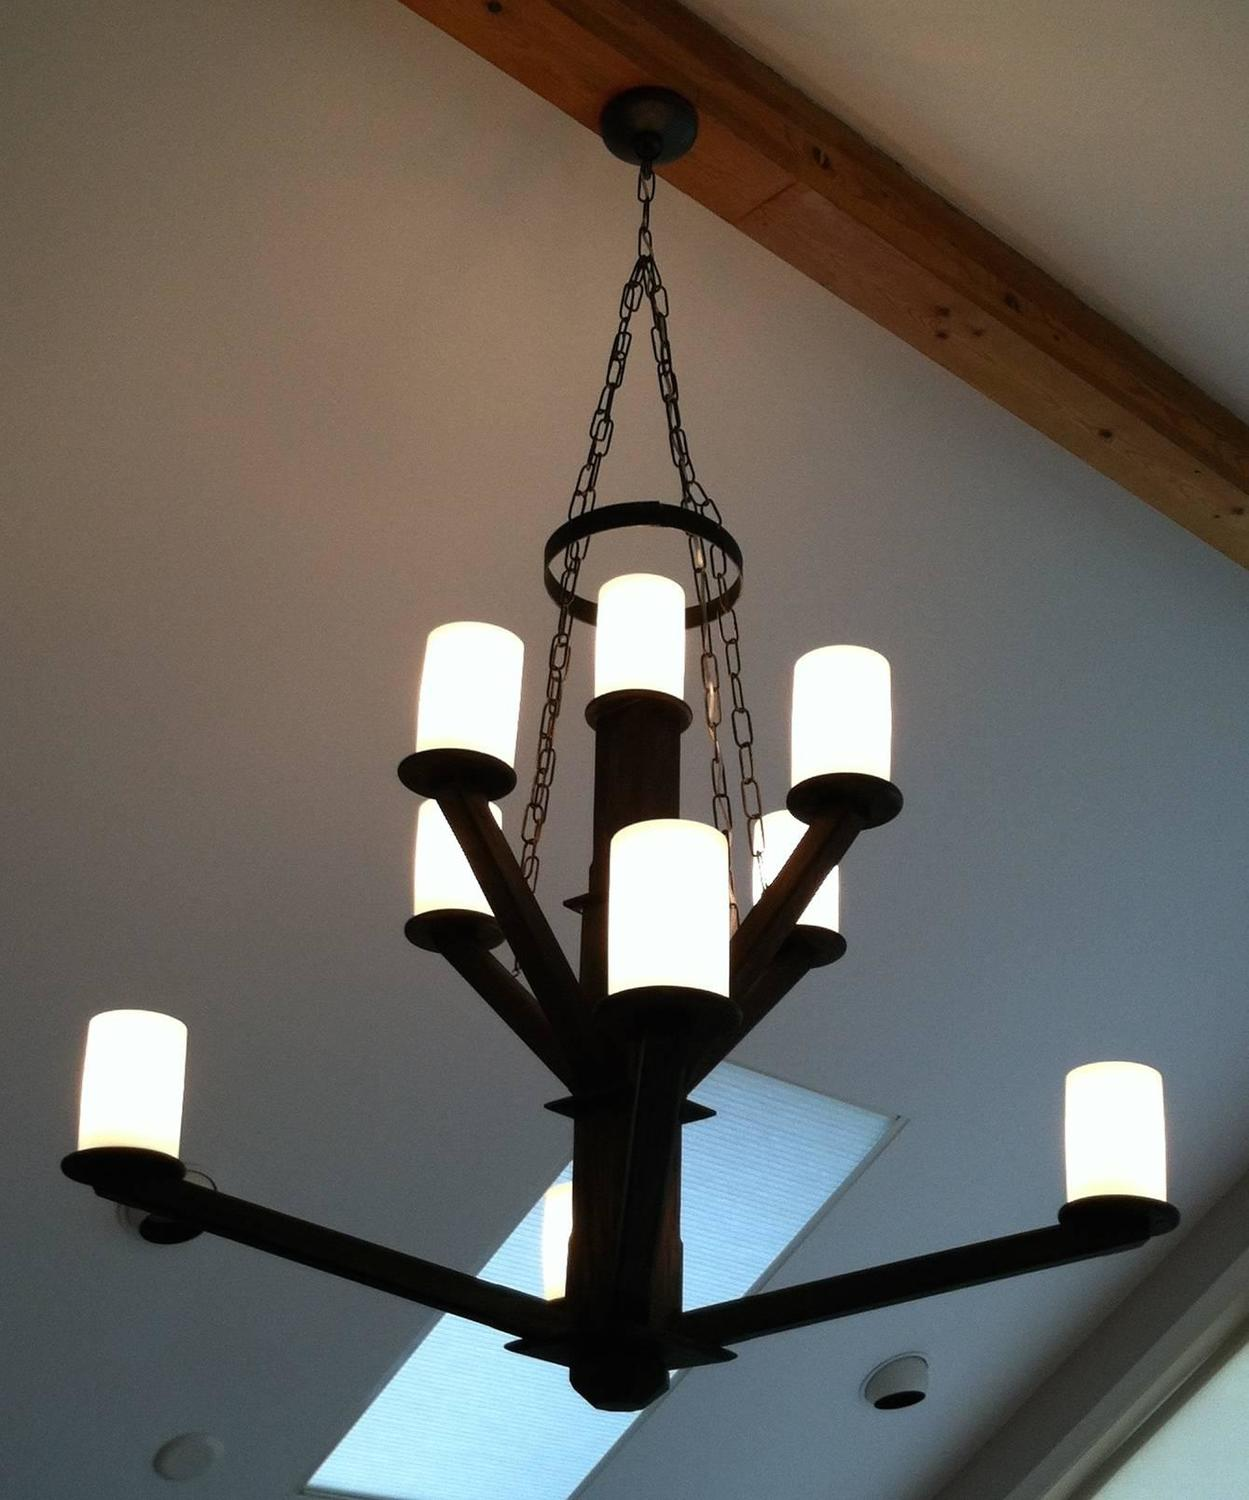 Wood Chandelier Milk Glass Shades For Sale at 1stdibs